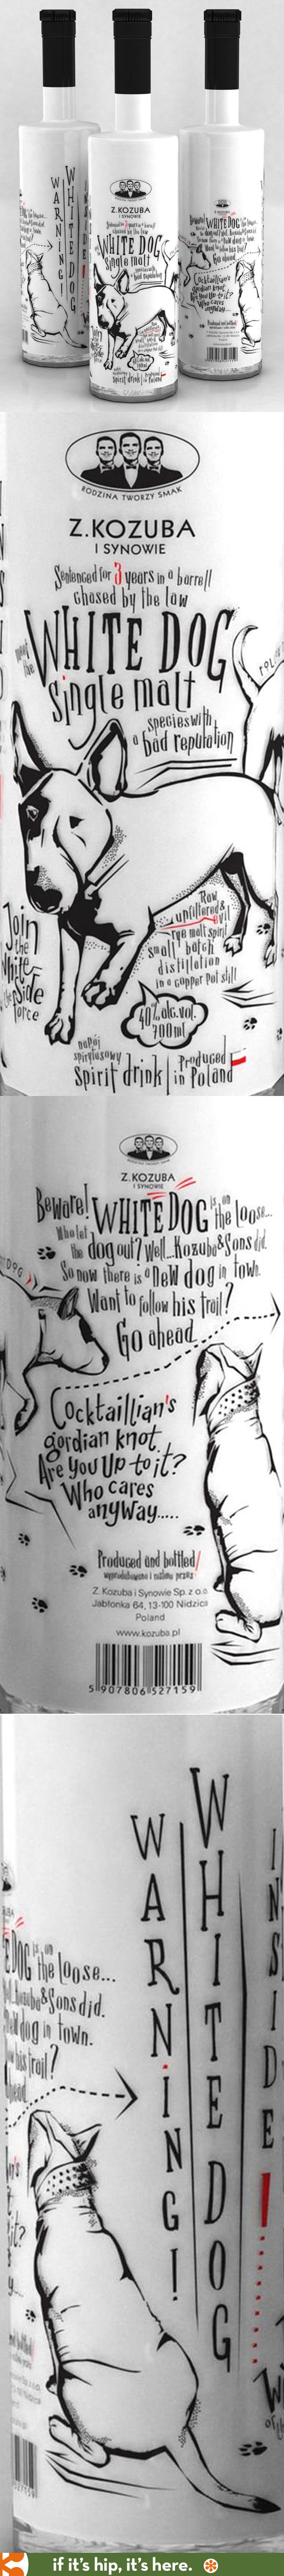 Fun bottle design for White Dog Single Malt.